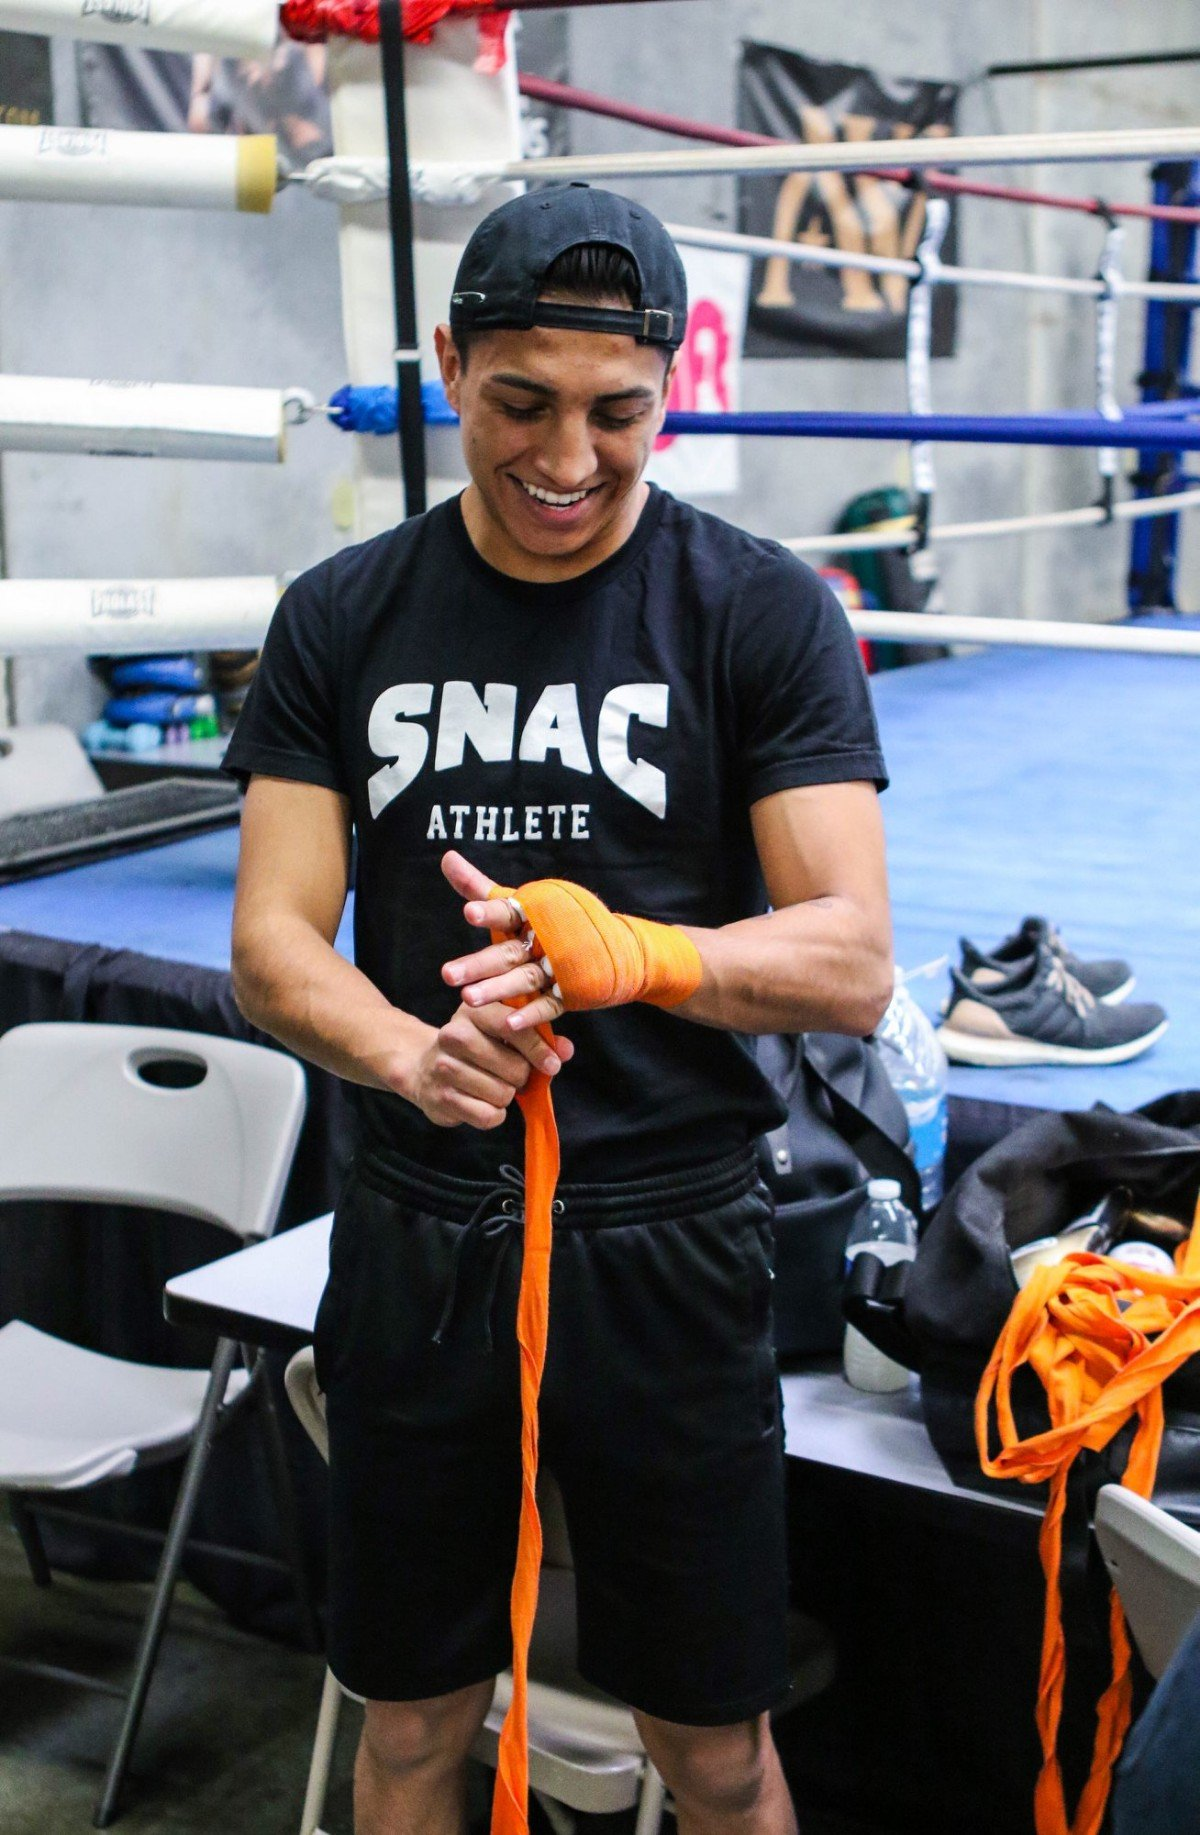 Undefeated super lightweight contender Mario Barrios will look to continue his push toward a world title shot when he faces Mexico's Richard Zamora (19-2, 12 KOs) live on SHOWTIME this Saturday, February 9 from Dignity Health Sports Park, formerly StubHub Center, in Carson, Calif, and presented by Premier Boxing Champions.